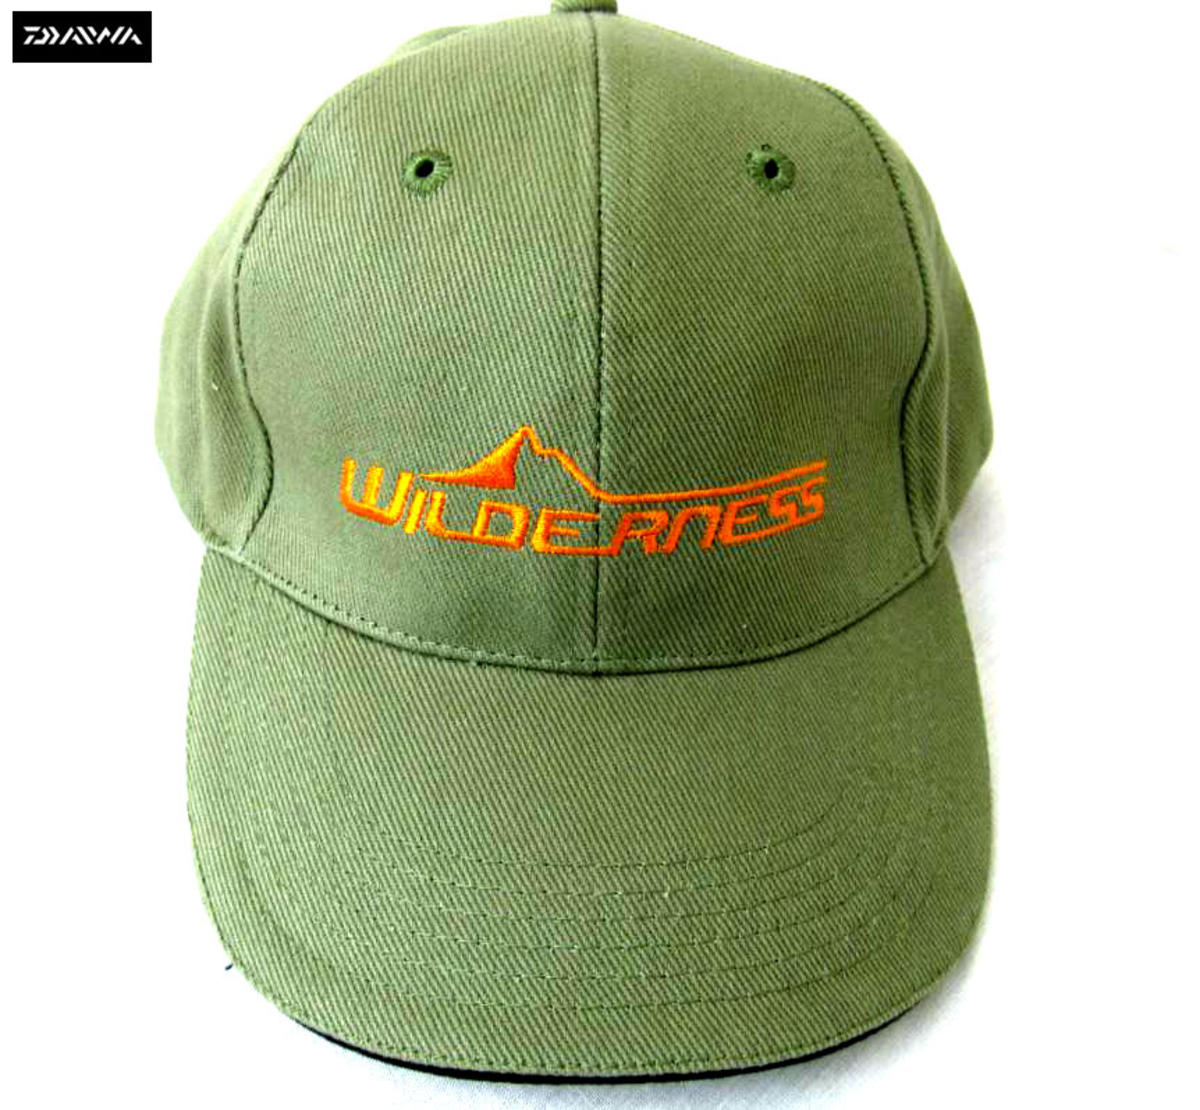 Special Clearance Offer Daiwa Wilderness Fishing Cap